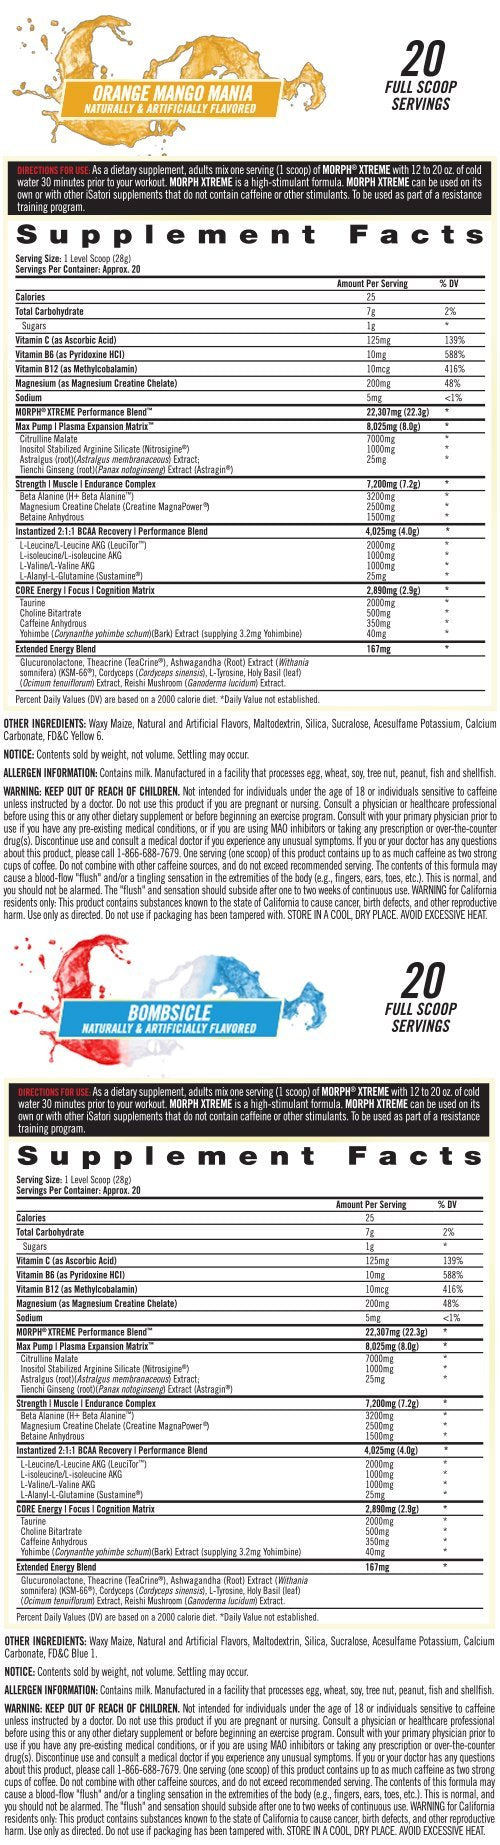 Supplement Facts - MORPH<sup>®</sup> XTREME